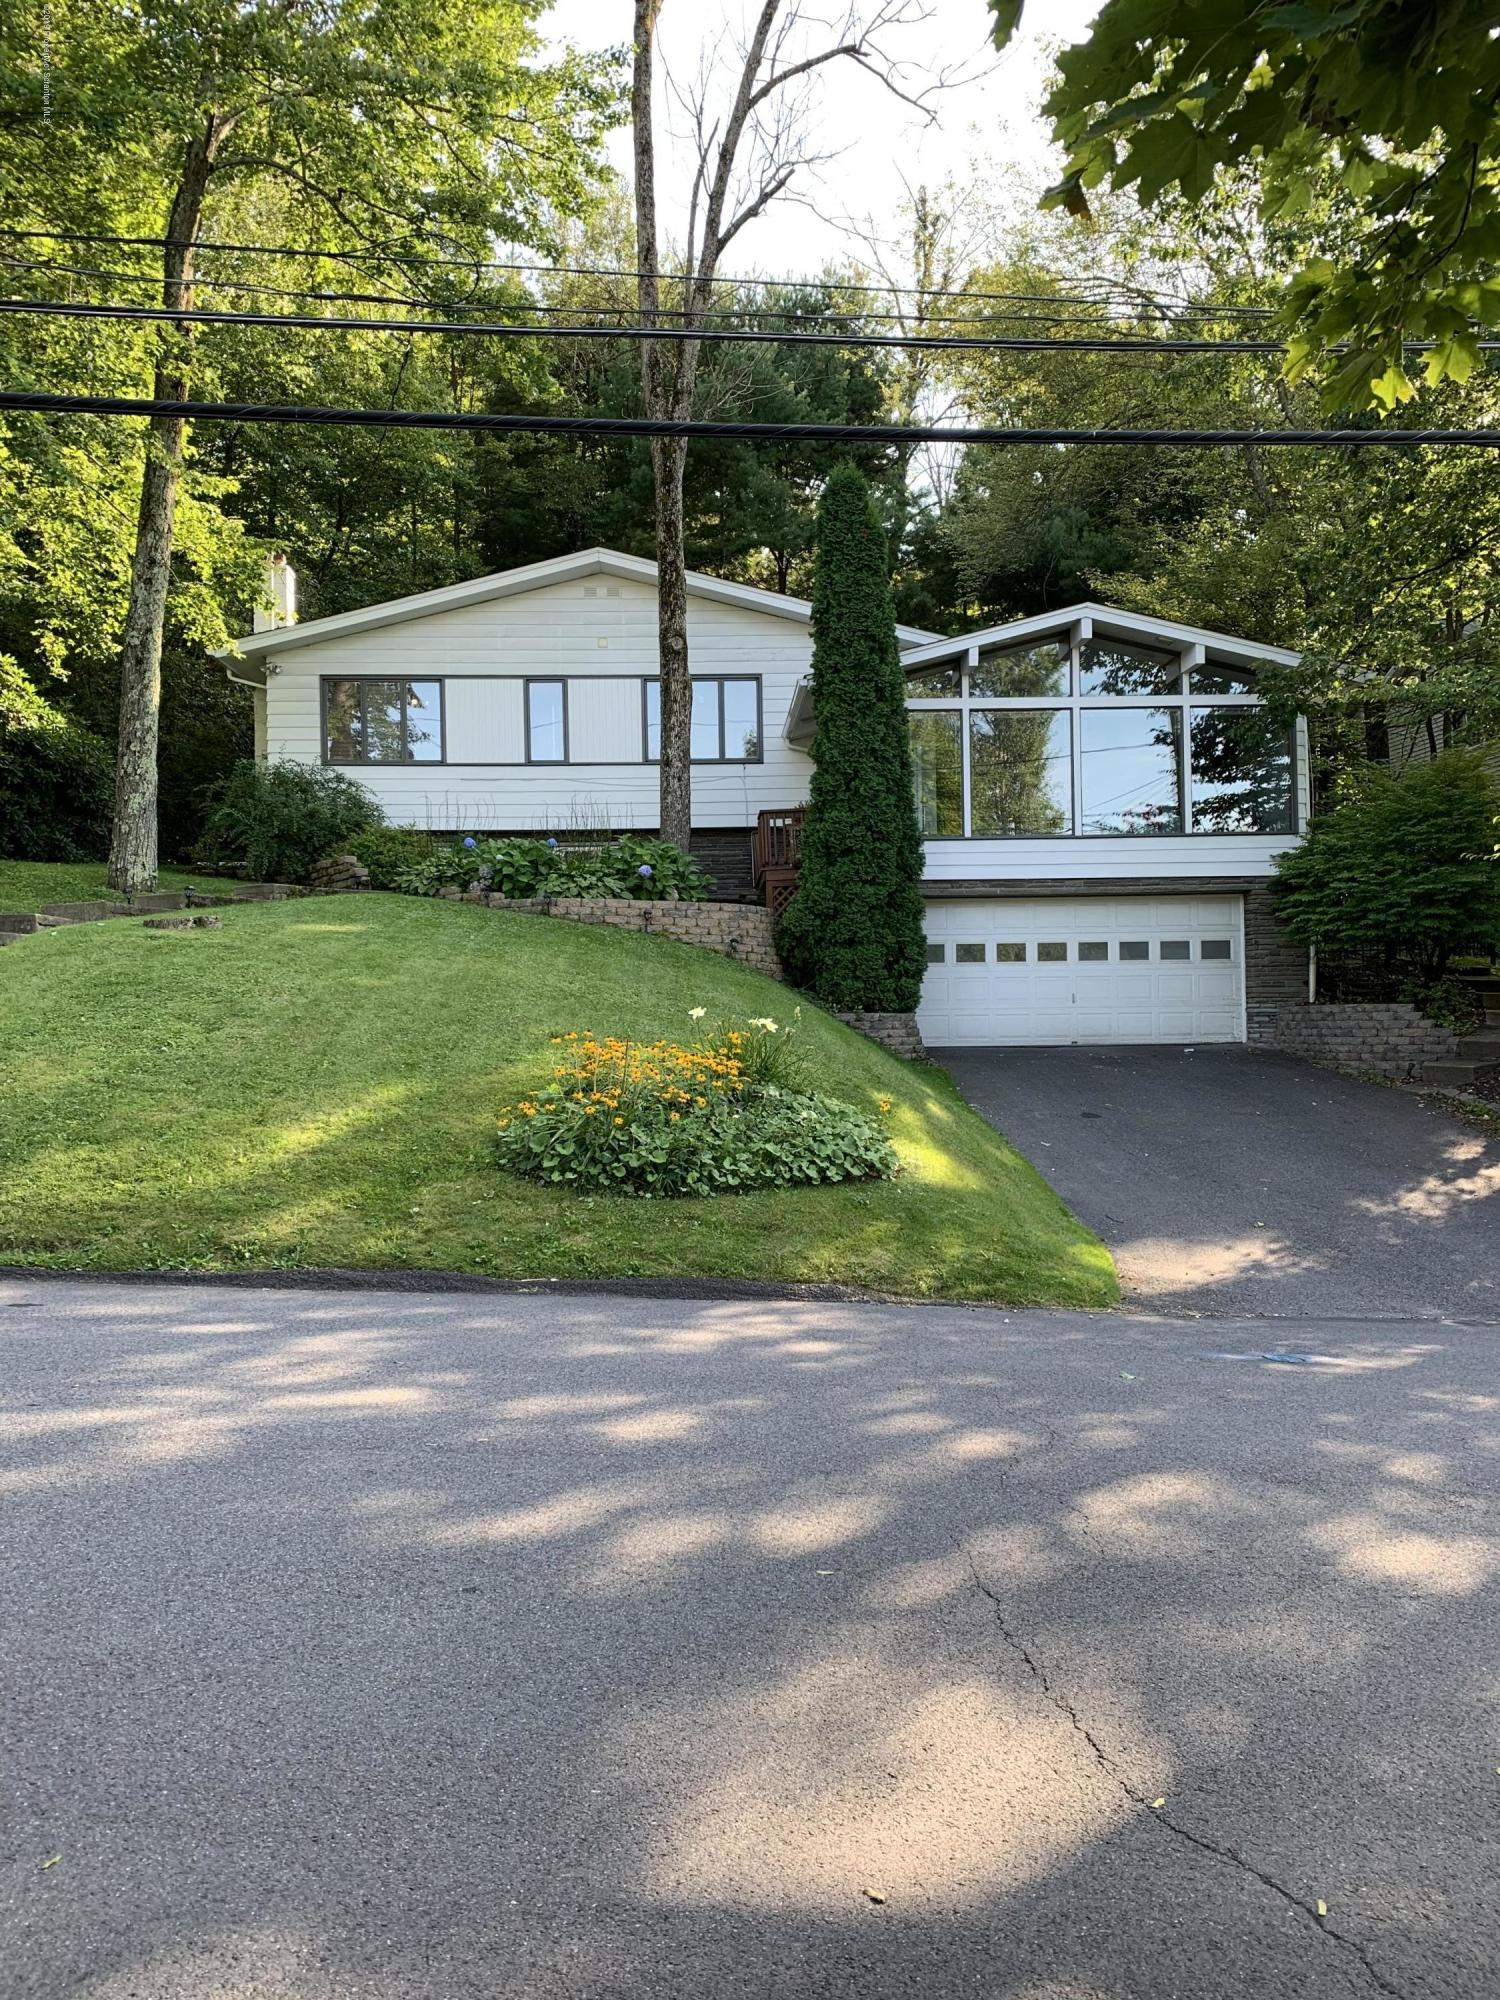 104 Grandview St, Clarks Summit, Pennsylvania 18411, 4 Bedrooms Bedrooms, 8 Rooms Rooms,3 BathroomsBathrooms,Single Family,For Sale,Grandview,19-3950